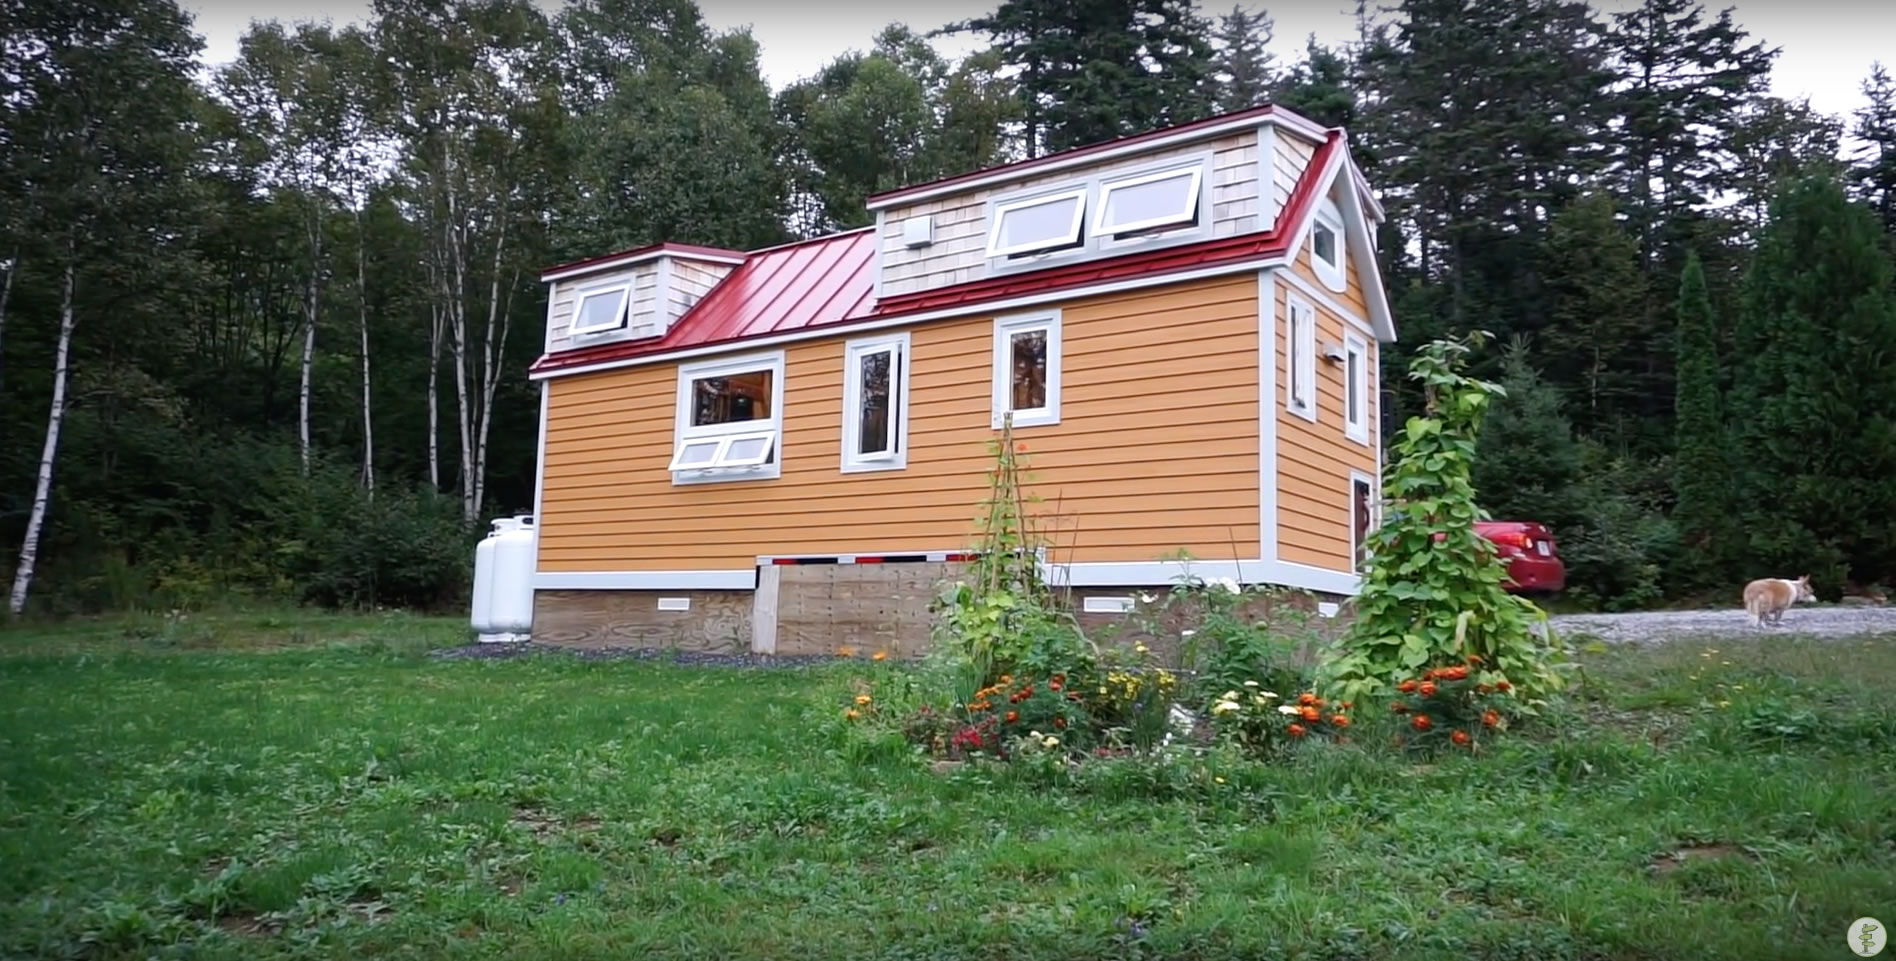 Exterior - Challenges & Benefits of Tiny House Living - Couple Shares Experience